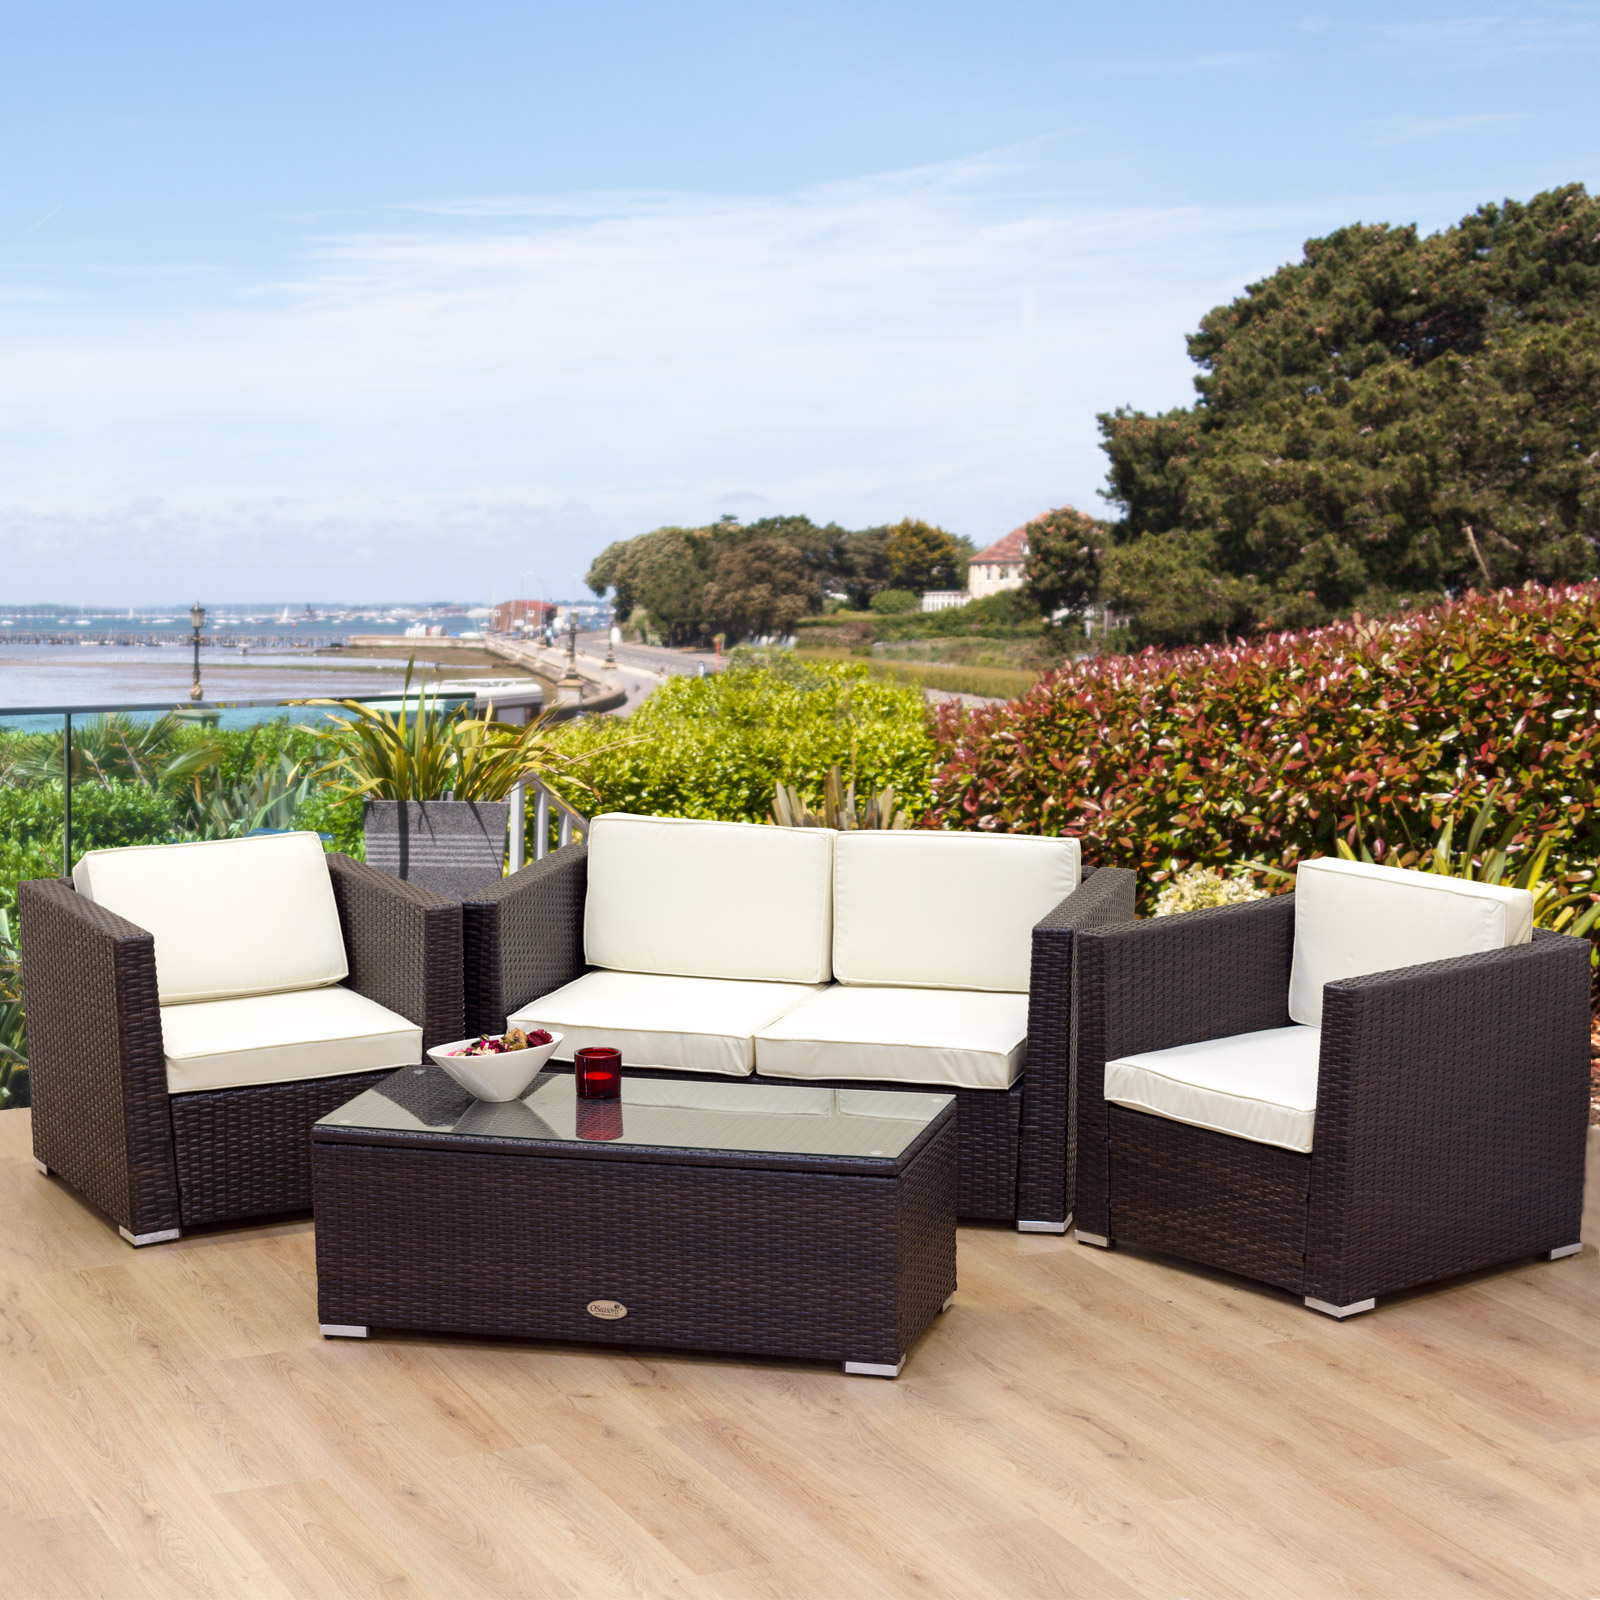 Awesome rattan garden furniture hgnv com for Outdoor furniture images